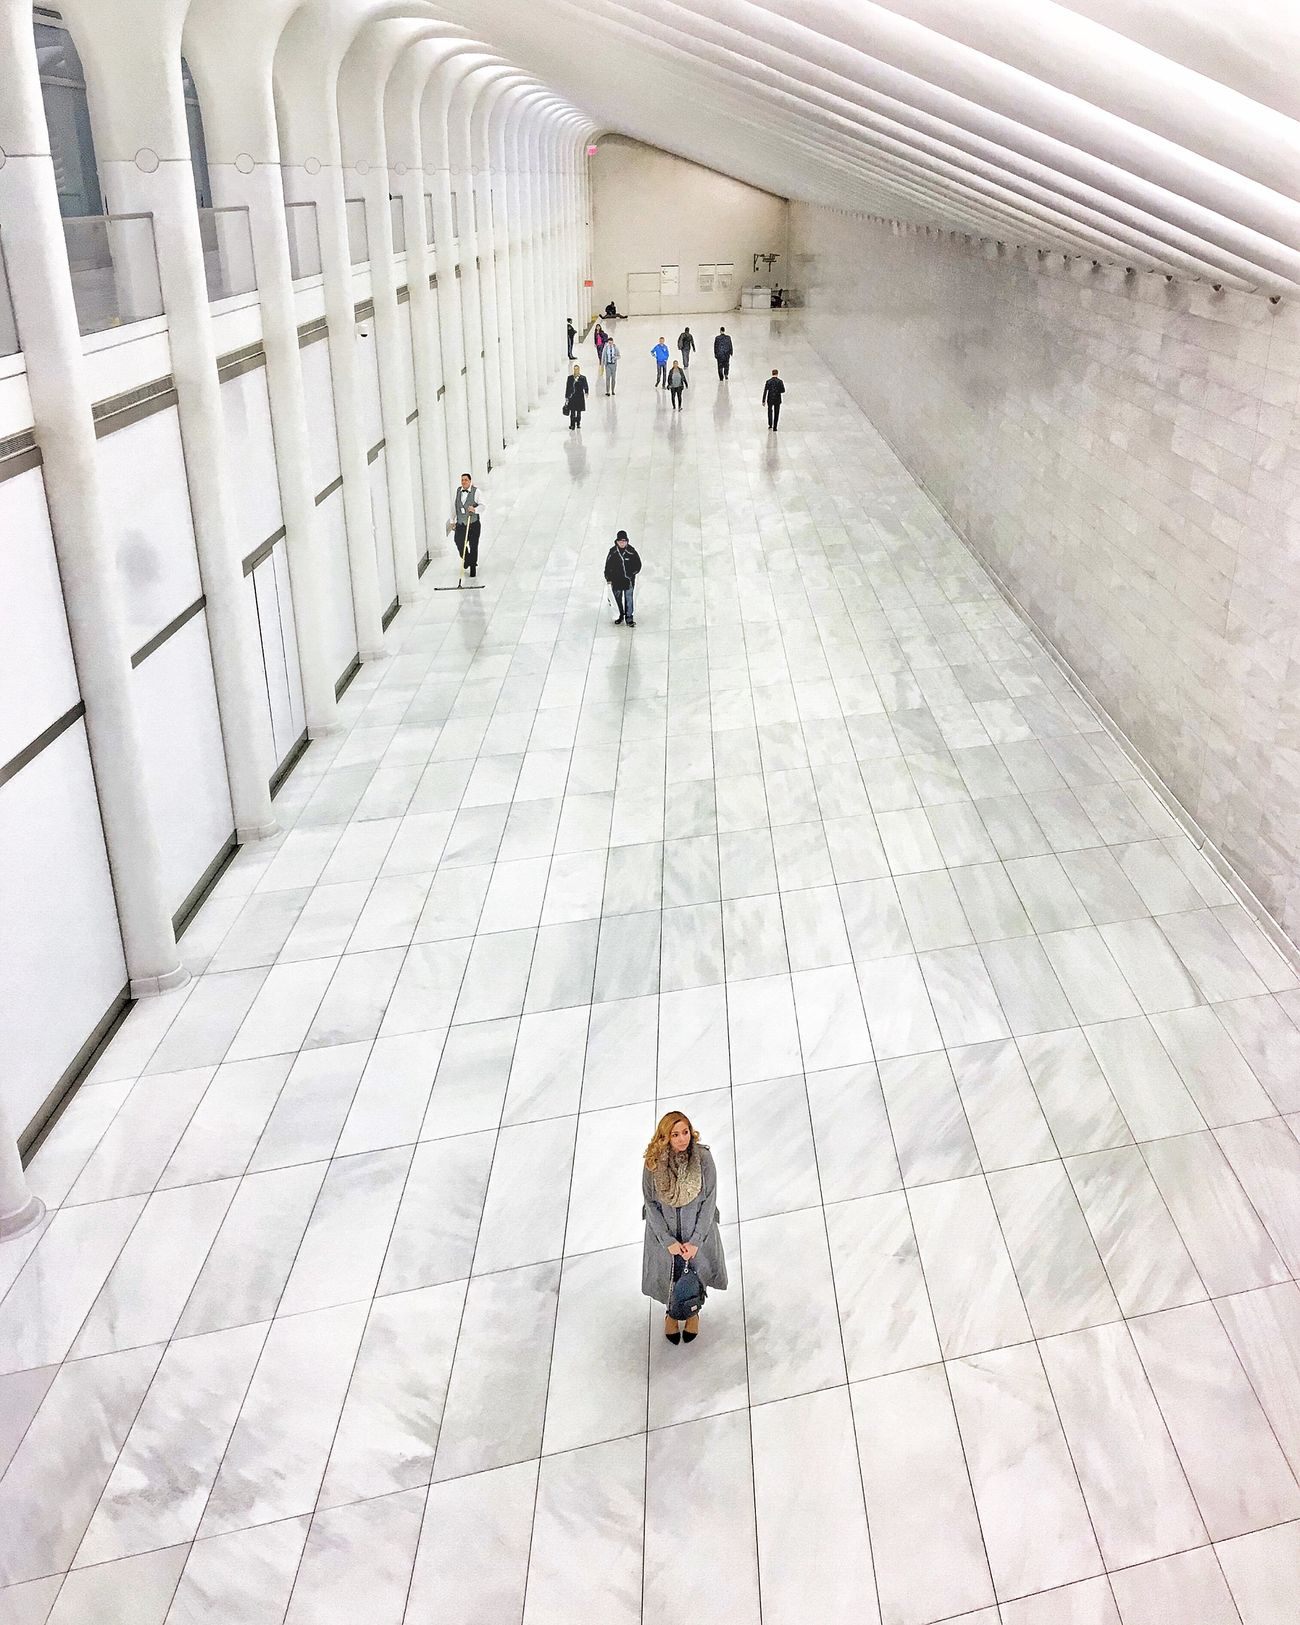 Wtc Path Station Path Station White WhiteCollection Station NYC Photography NYC Posing For The Camera Posing Today's Hot Look The Places I've Been Today EyeEm Best Shots New York City Lookingup Lookingdown Looking Down My View The Best Of New York Enjoying Life Enjoying The View Taking Photo Capture The Moment Modeling White Background Newyork